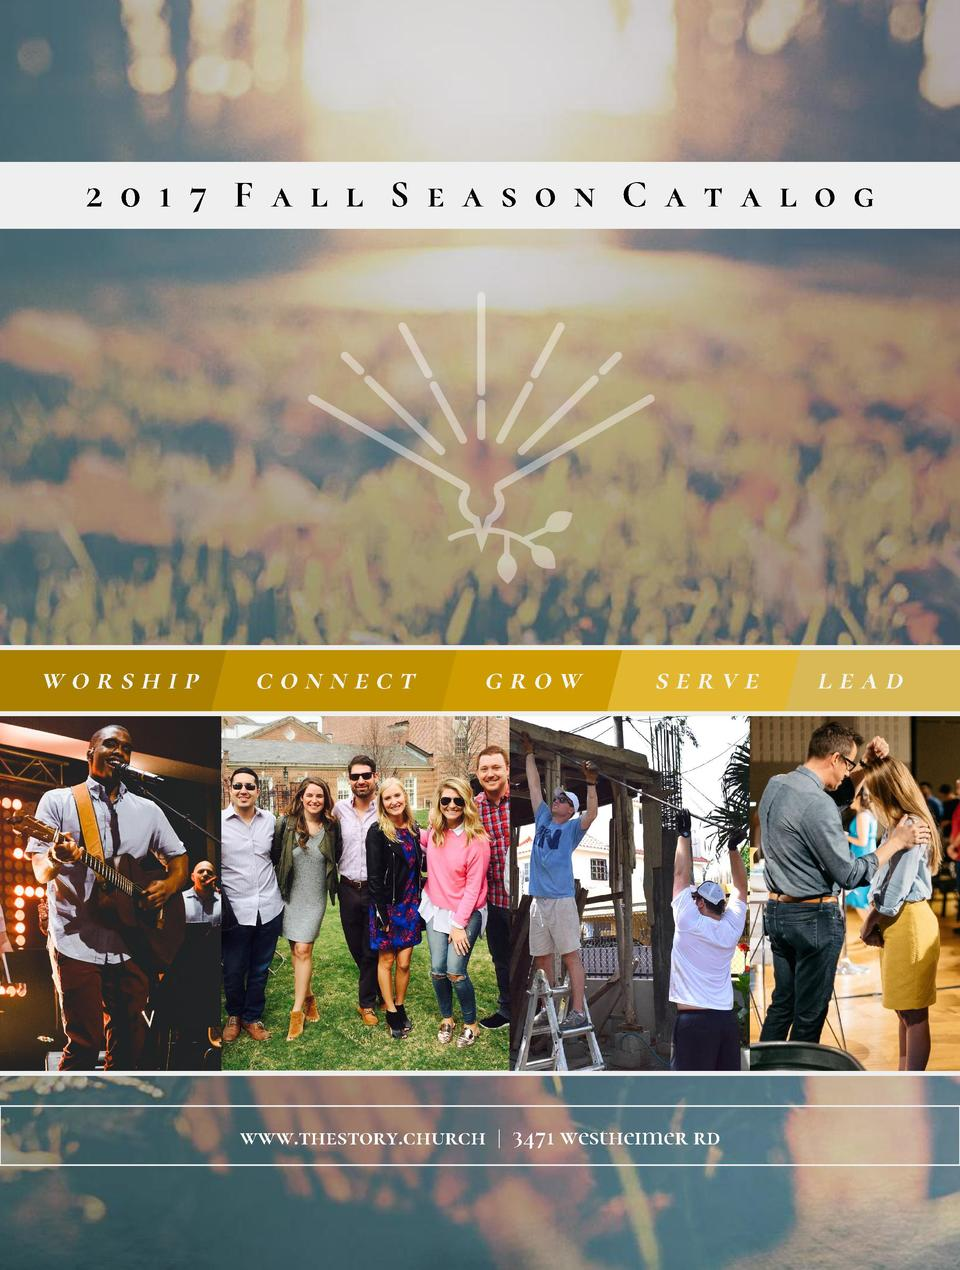 2 0 1 7 F a l l S e a s o n C a t a l o g  worship  connect  grow  serve  www.thestory.church   3471 westheimer rd  lead  ...